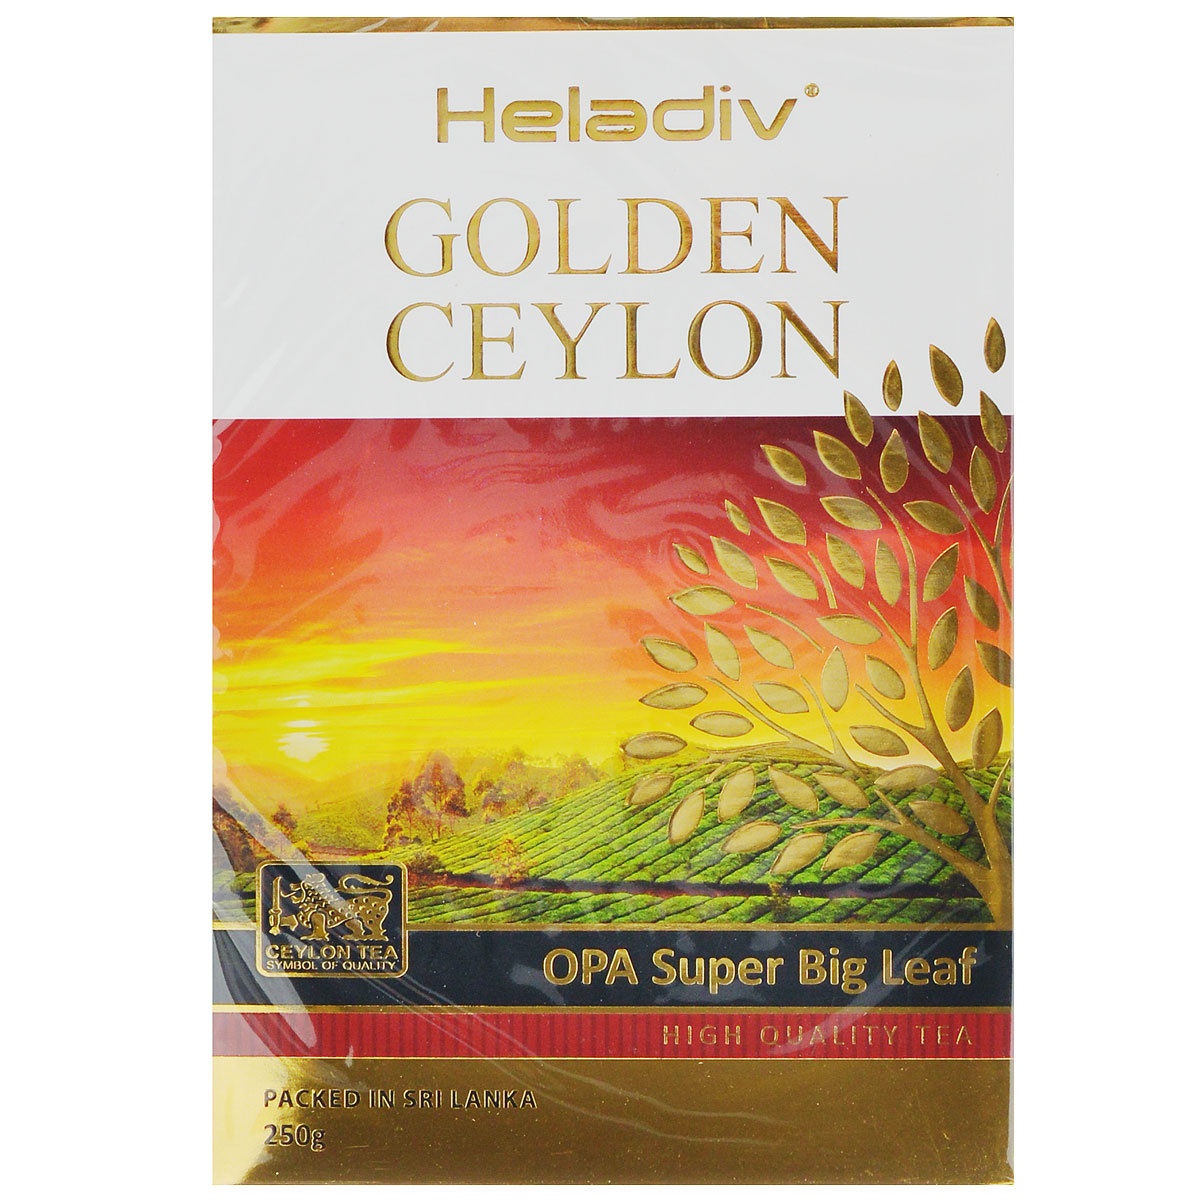 Heladiv Golden Ceylon Opa Super Big Leaf черный листовой чай, 250 г heladiv opa